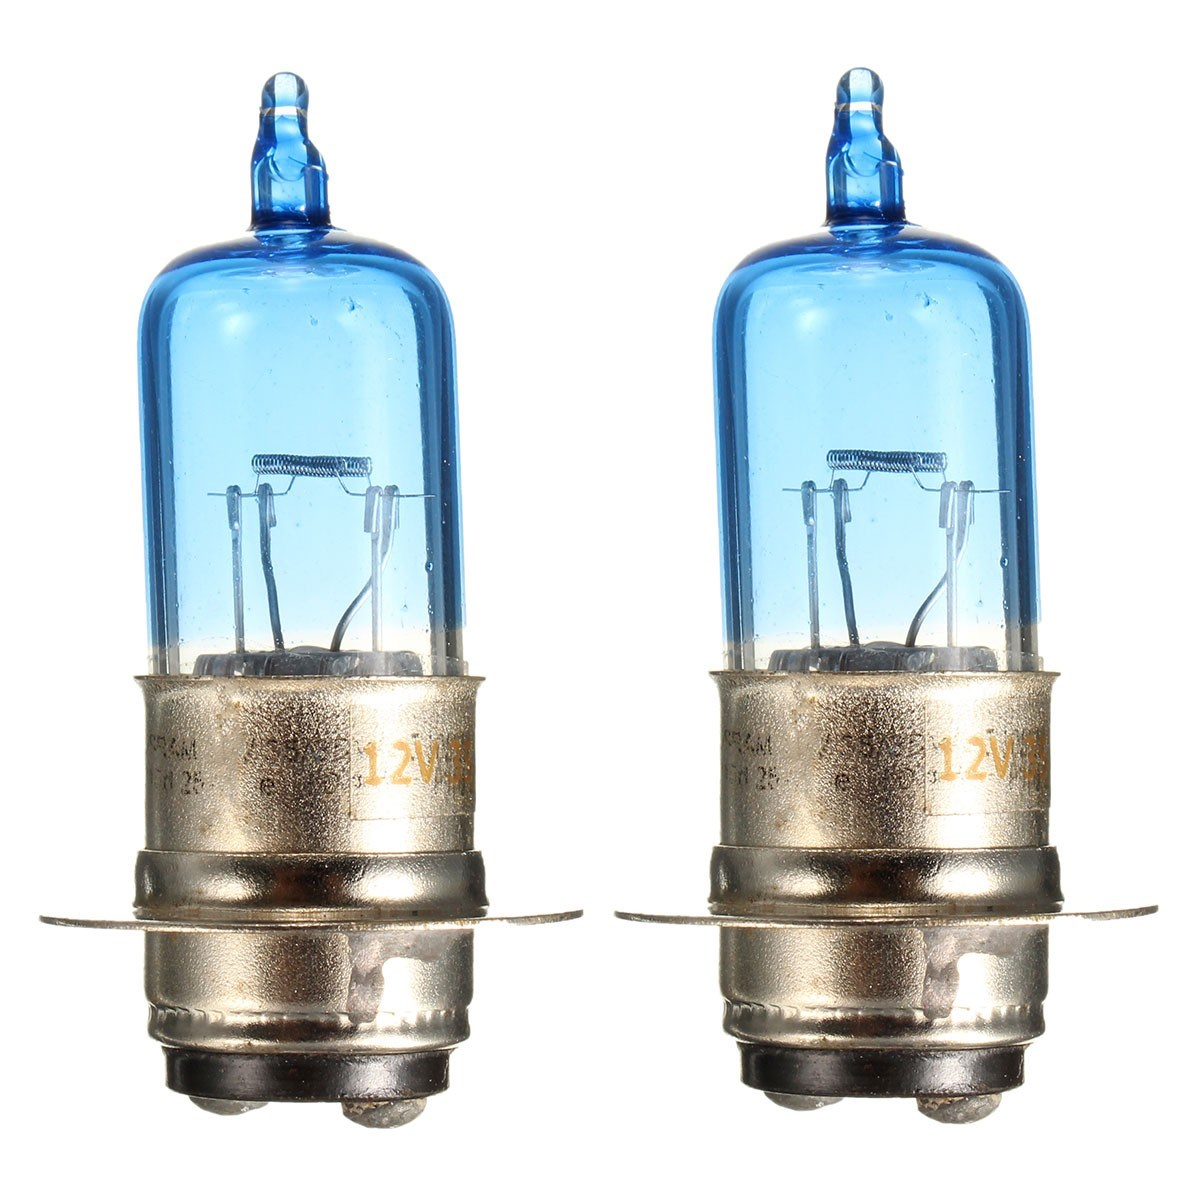 2 Pieces 35W ATV Lamp H6M Base 12V Motorcycle Headlight Bulb For Kawasaki For Honda For Suzuki For Yamaha Banshee